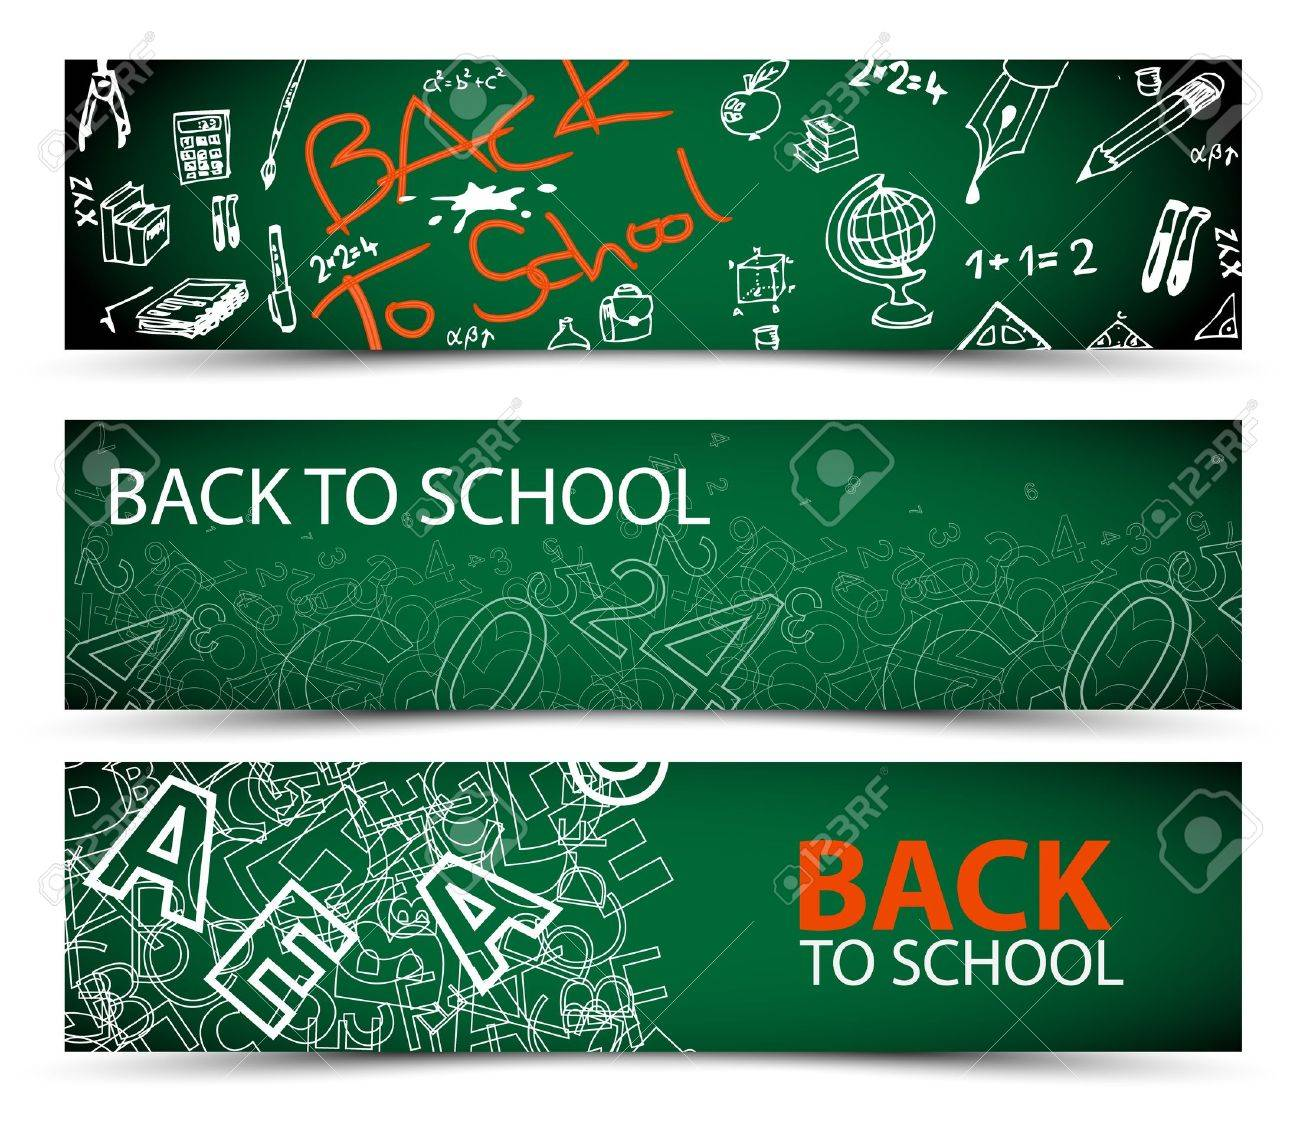 Back to School vector banners with drawings, doodles and letters Stock Vector - 14776678